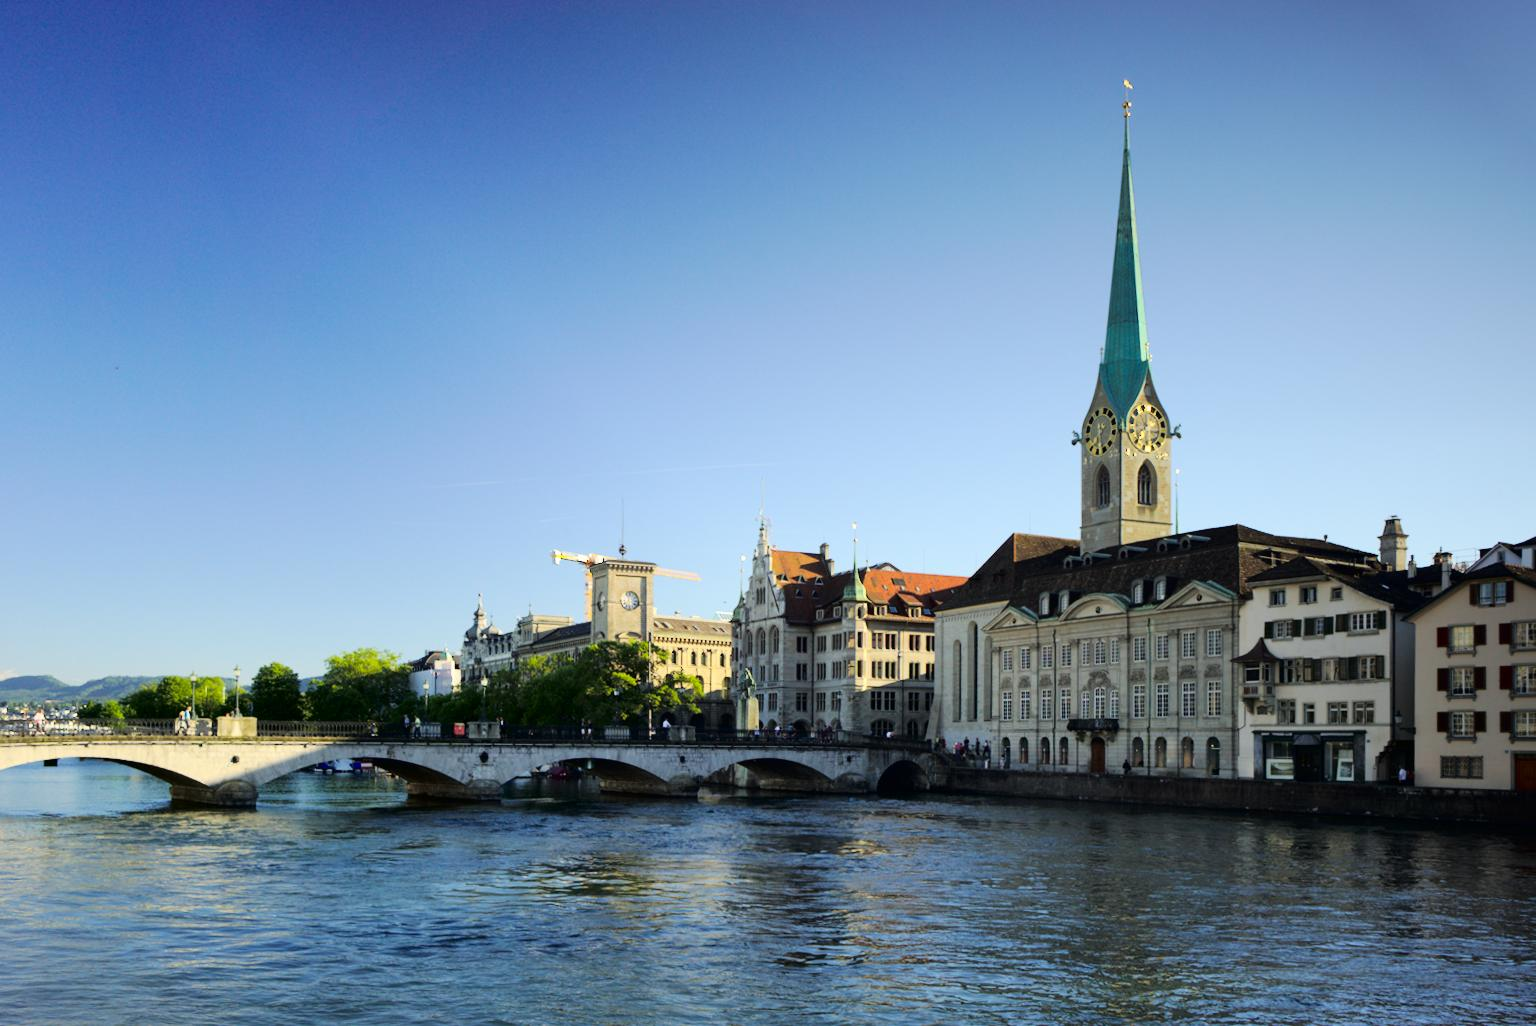 {filename}/img/zurich-1.jpg